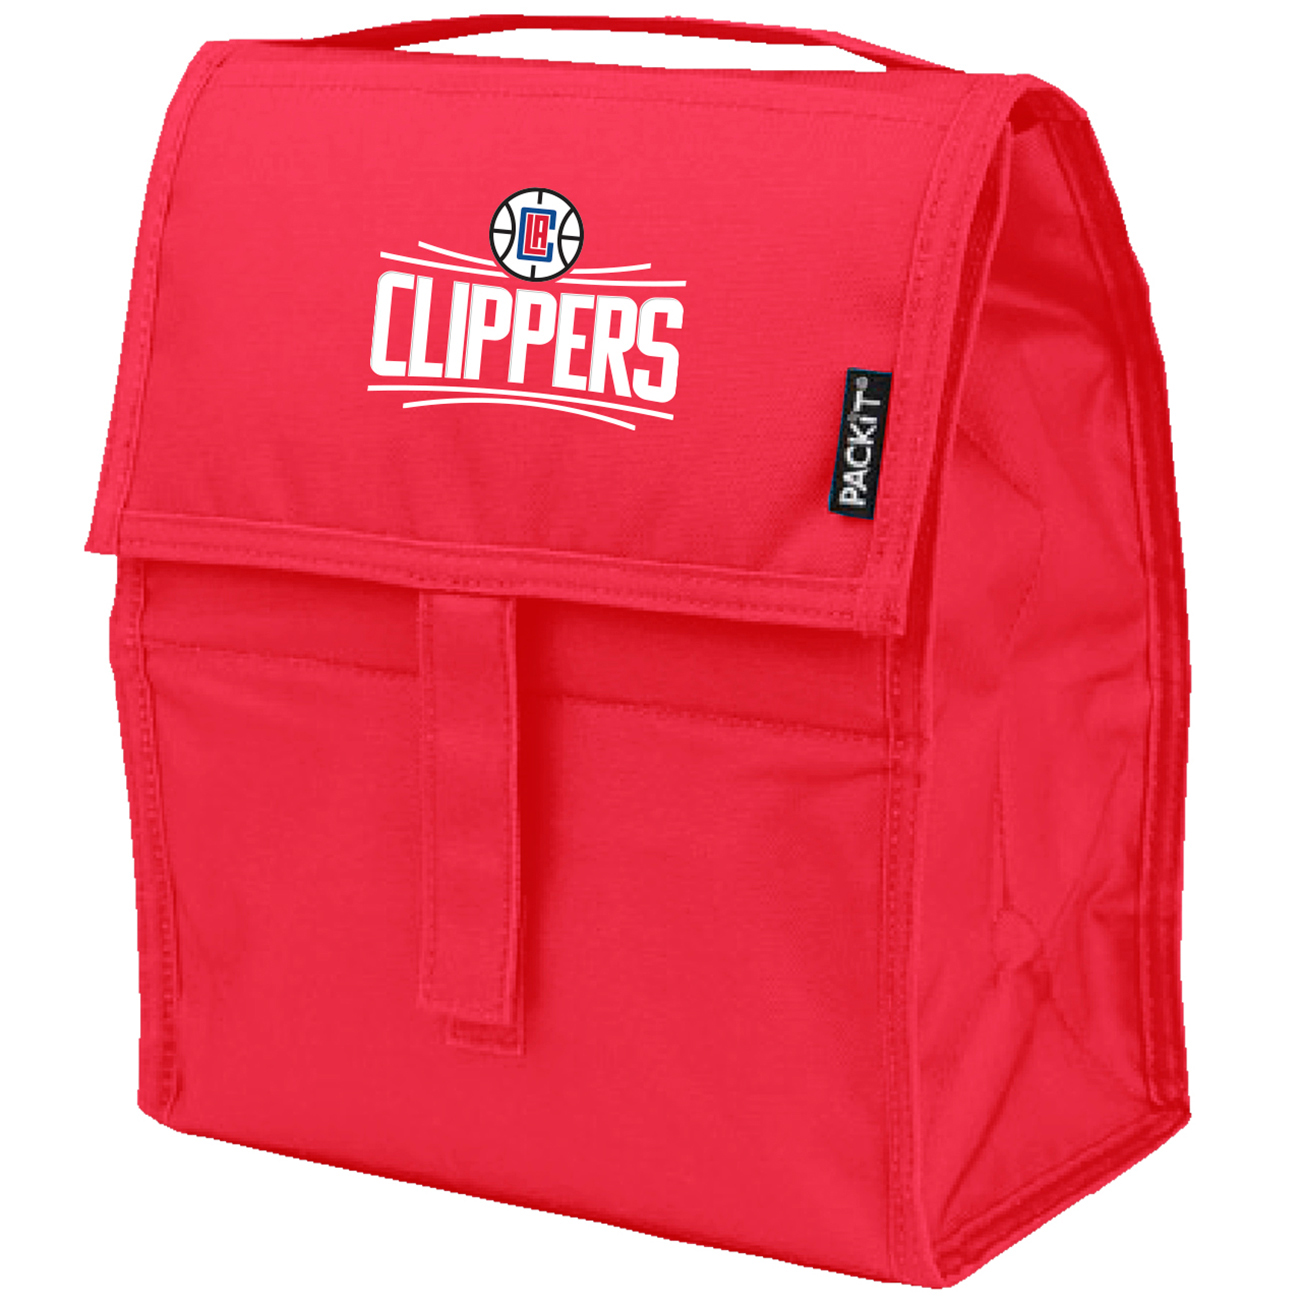 LA Clippers PackIt Lunch Box - No Size